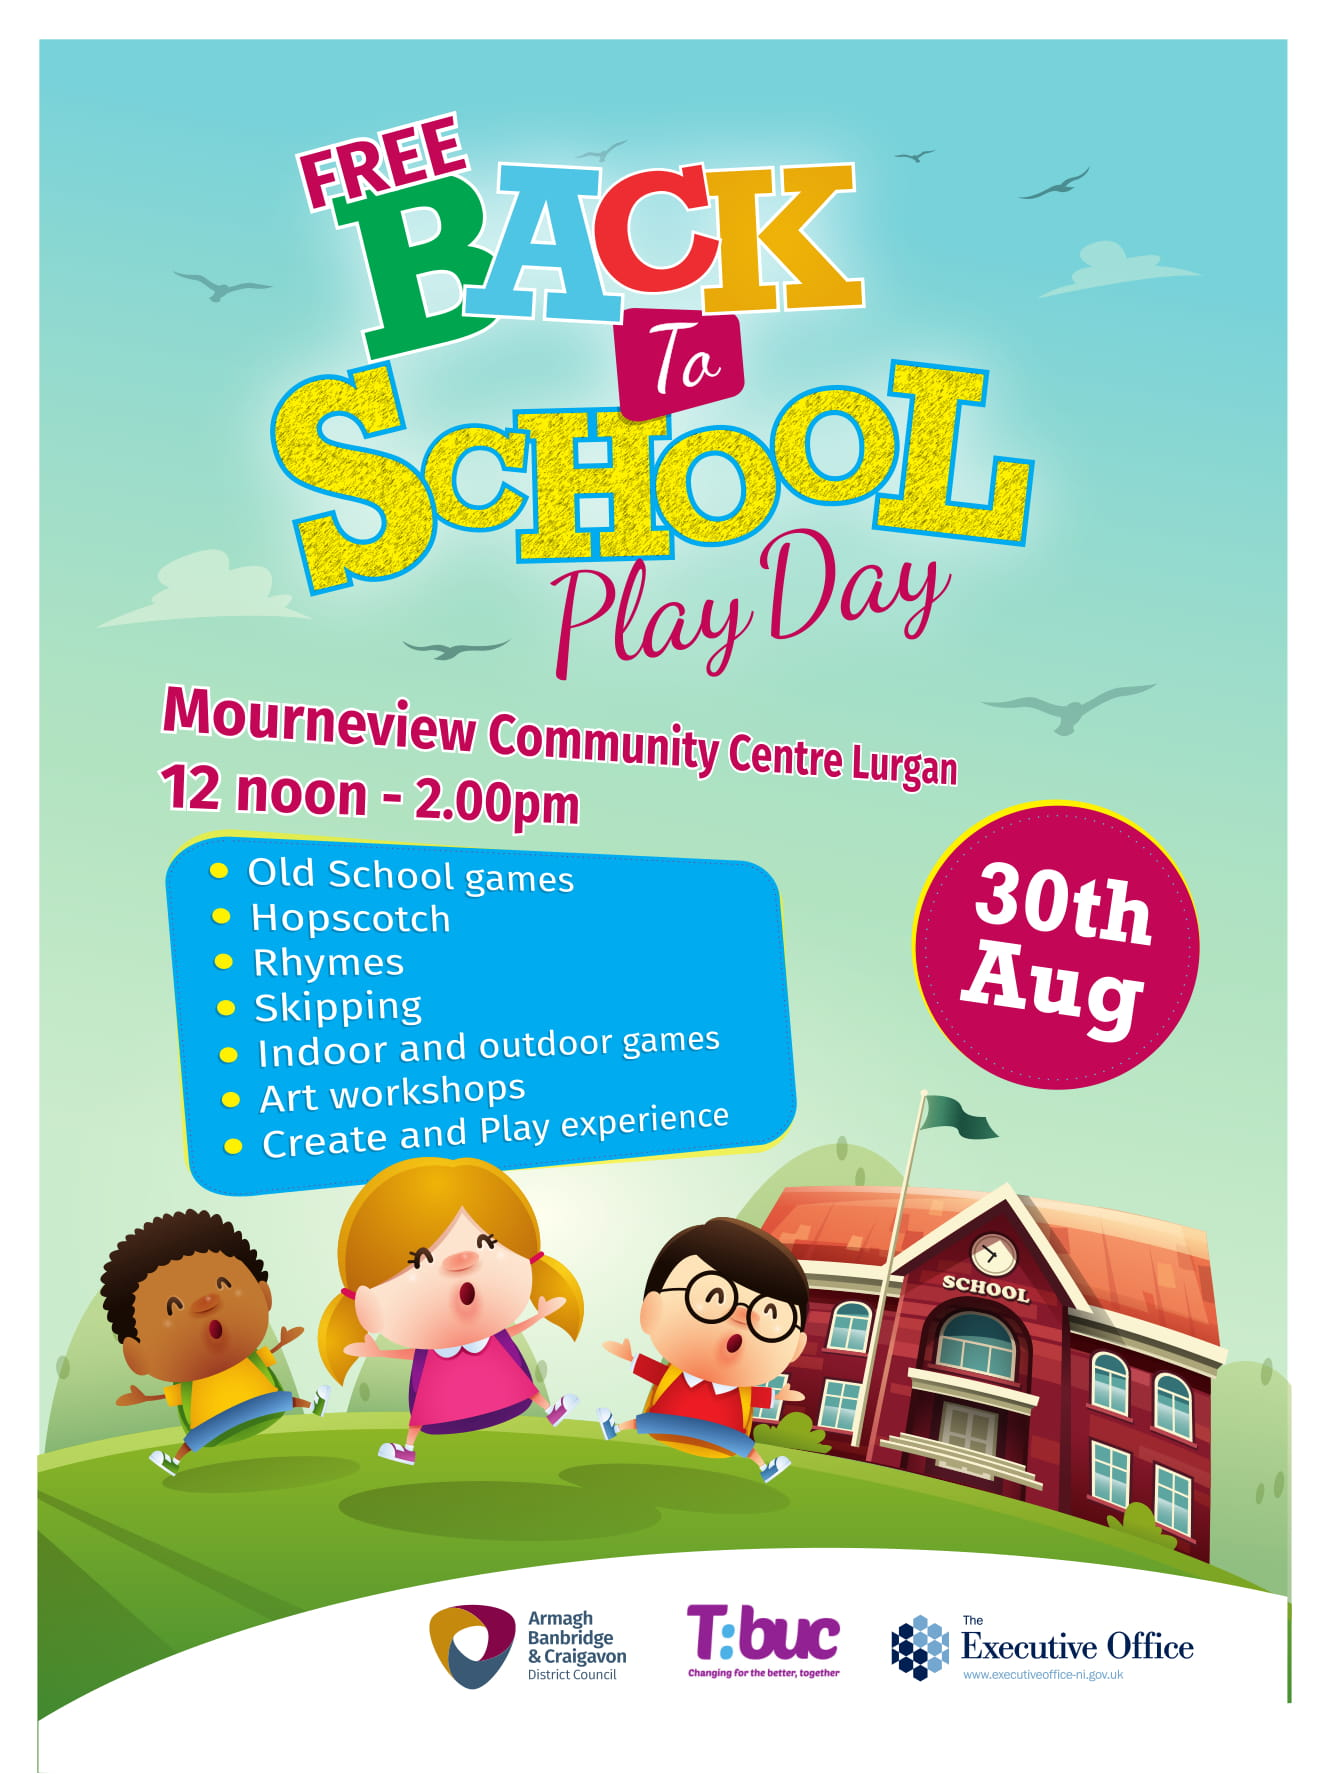 Free Back to School Play Day and Tea Dance at Mourneview Community Centre